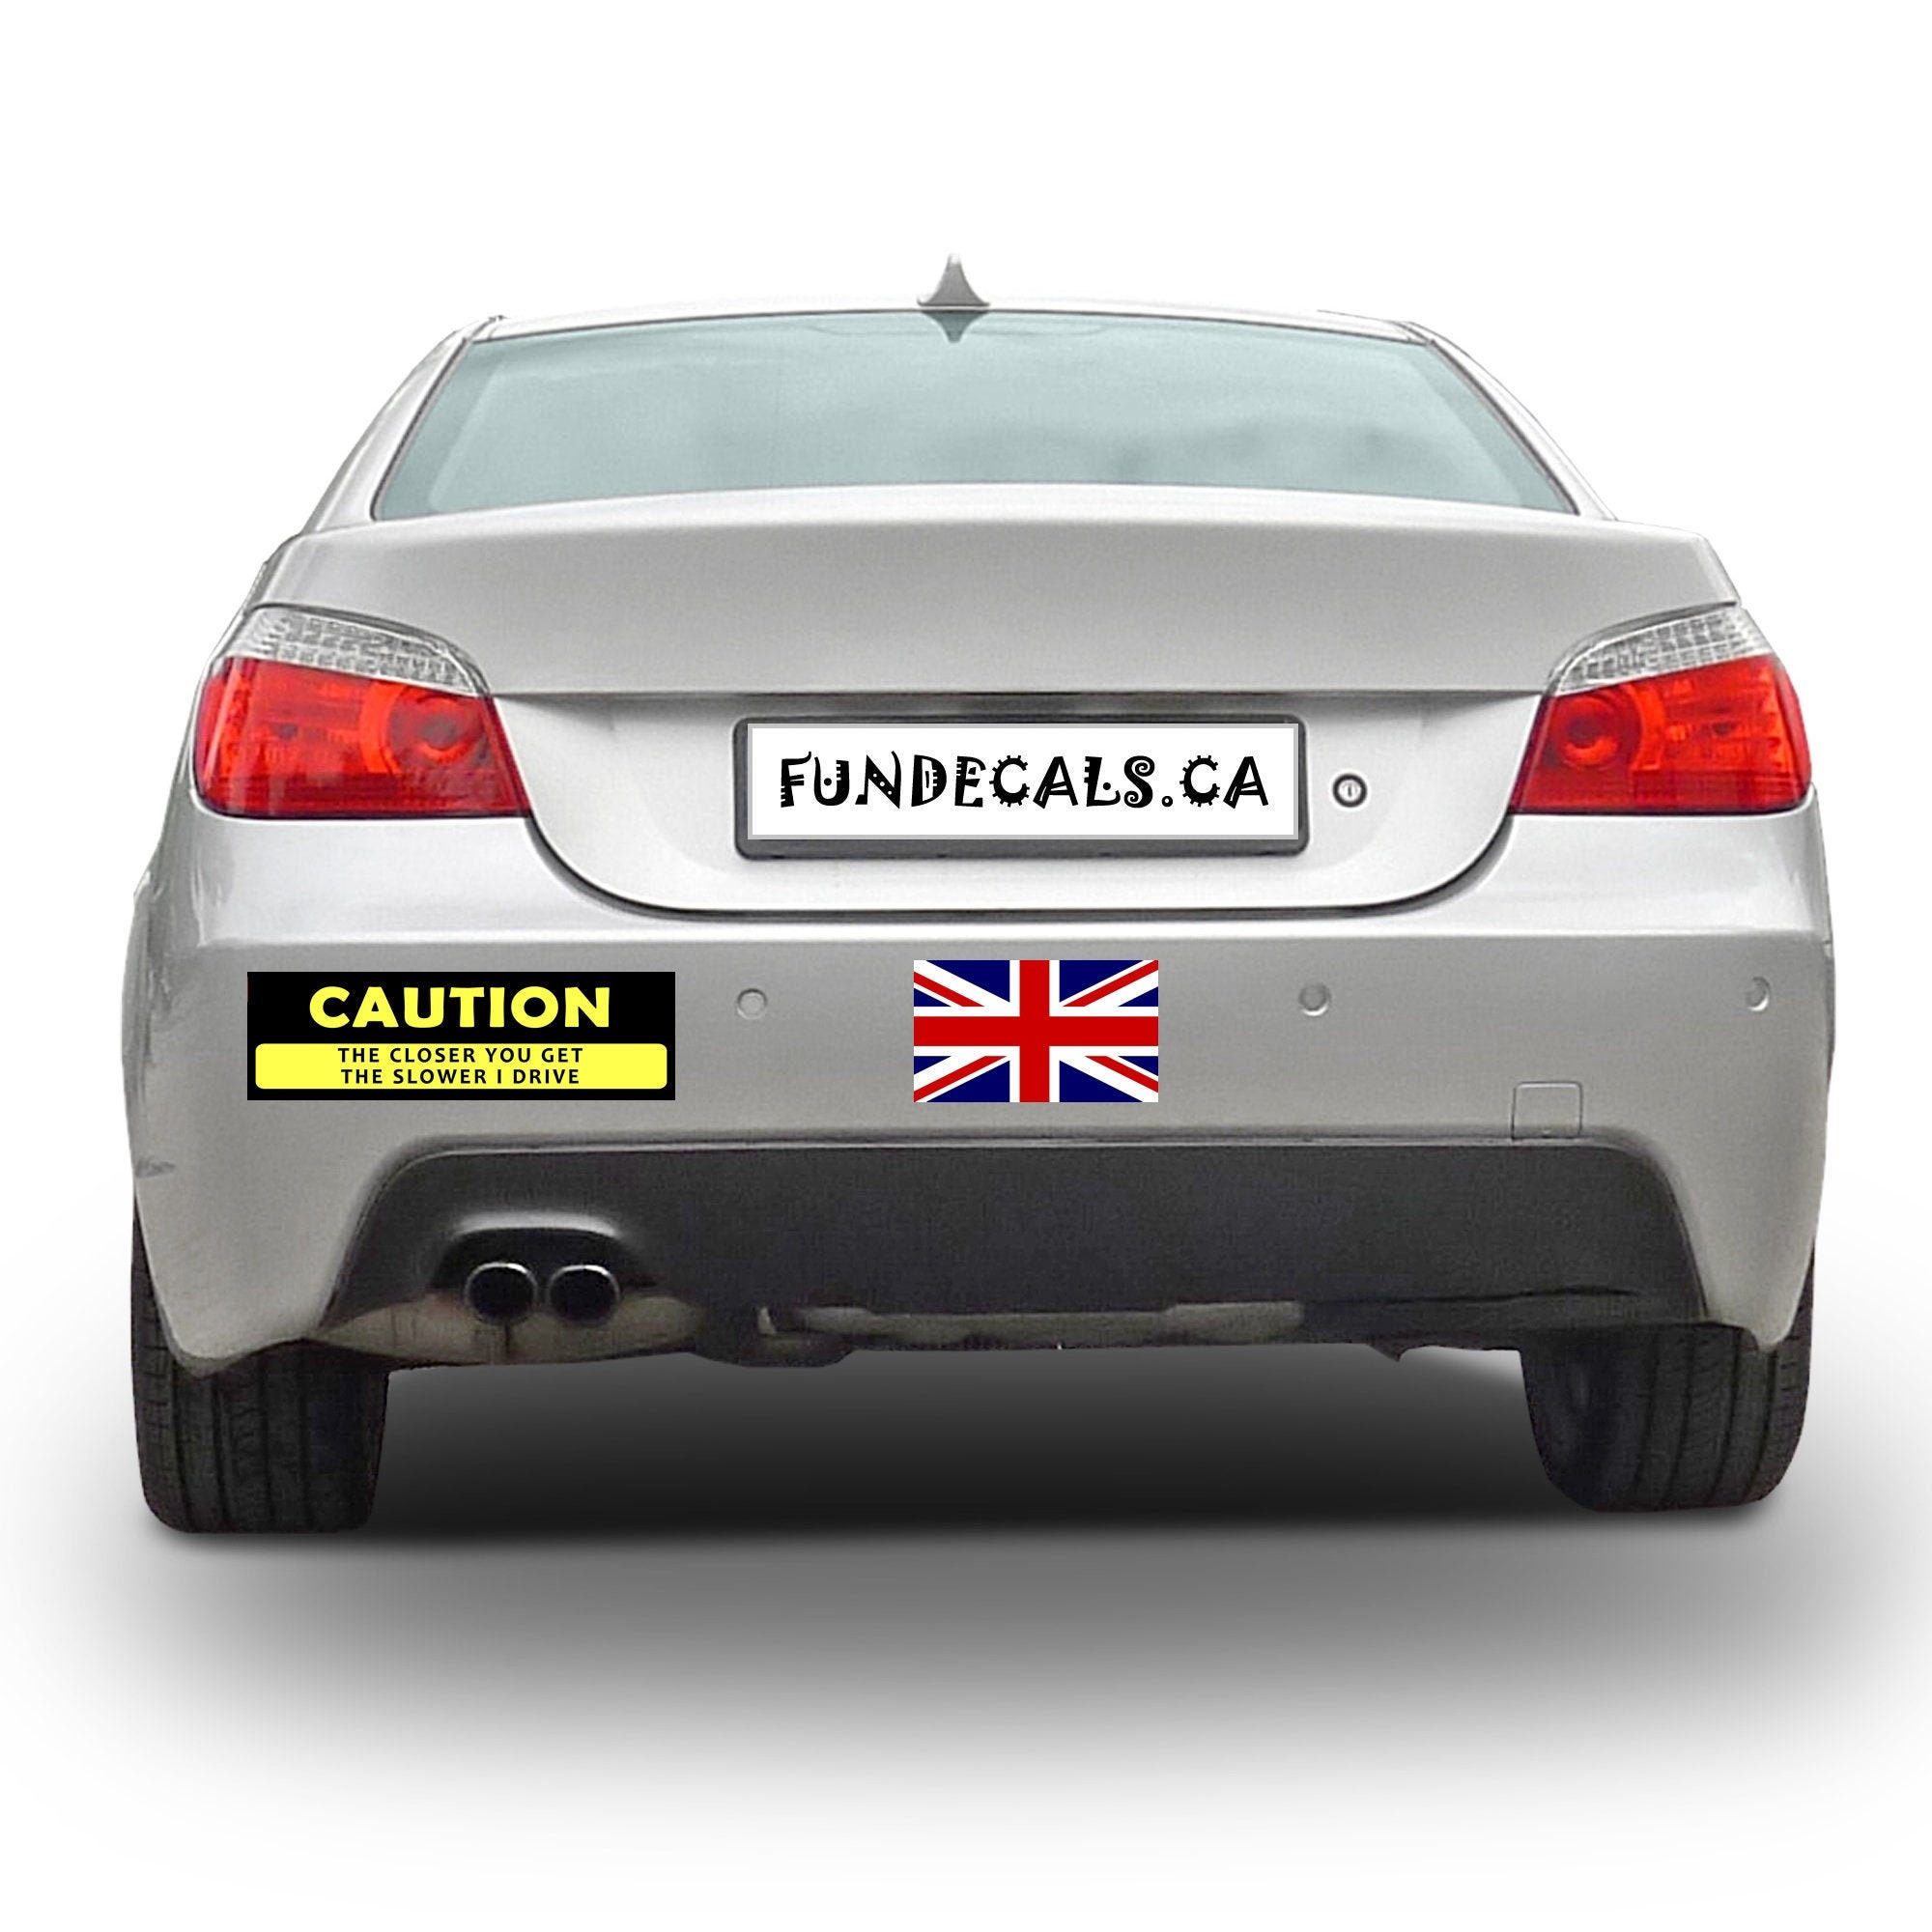 CAD$10.79 - 2X UK England Flag 5.7 x 3 inch Bumper Sticker or Magnetic Bumper Sticker Available